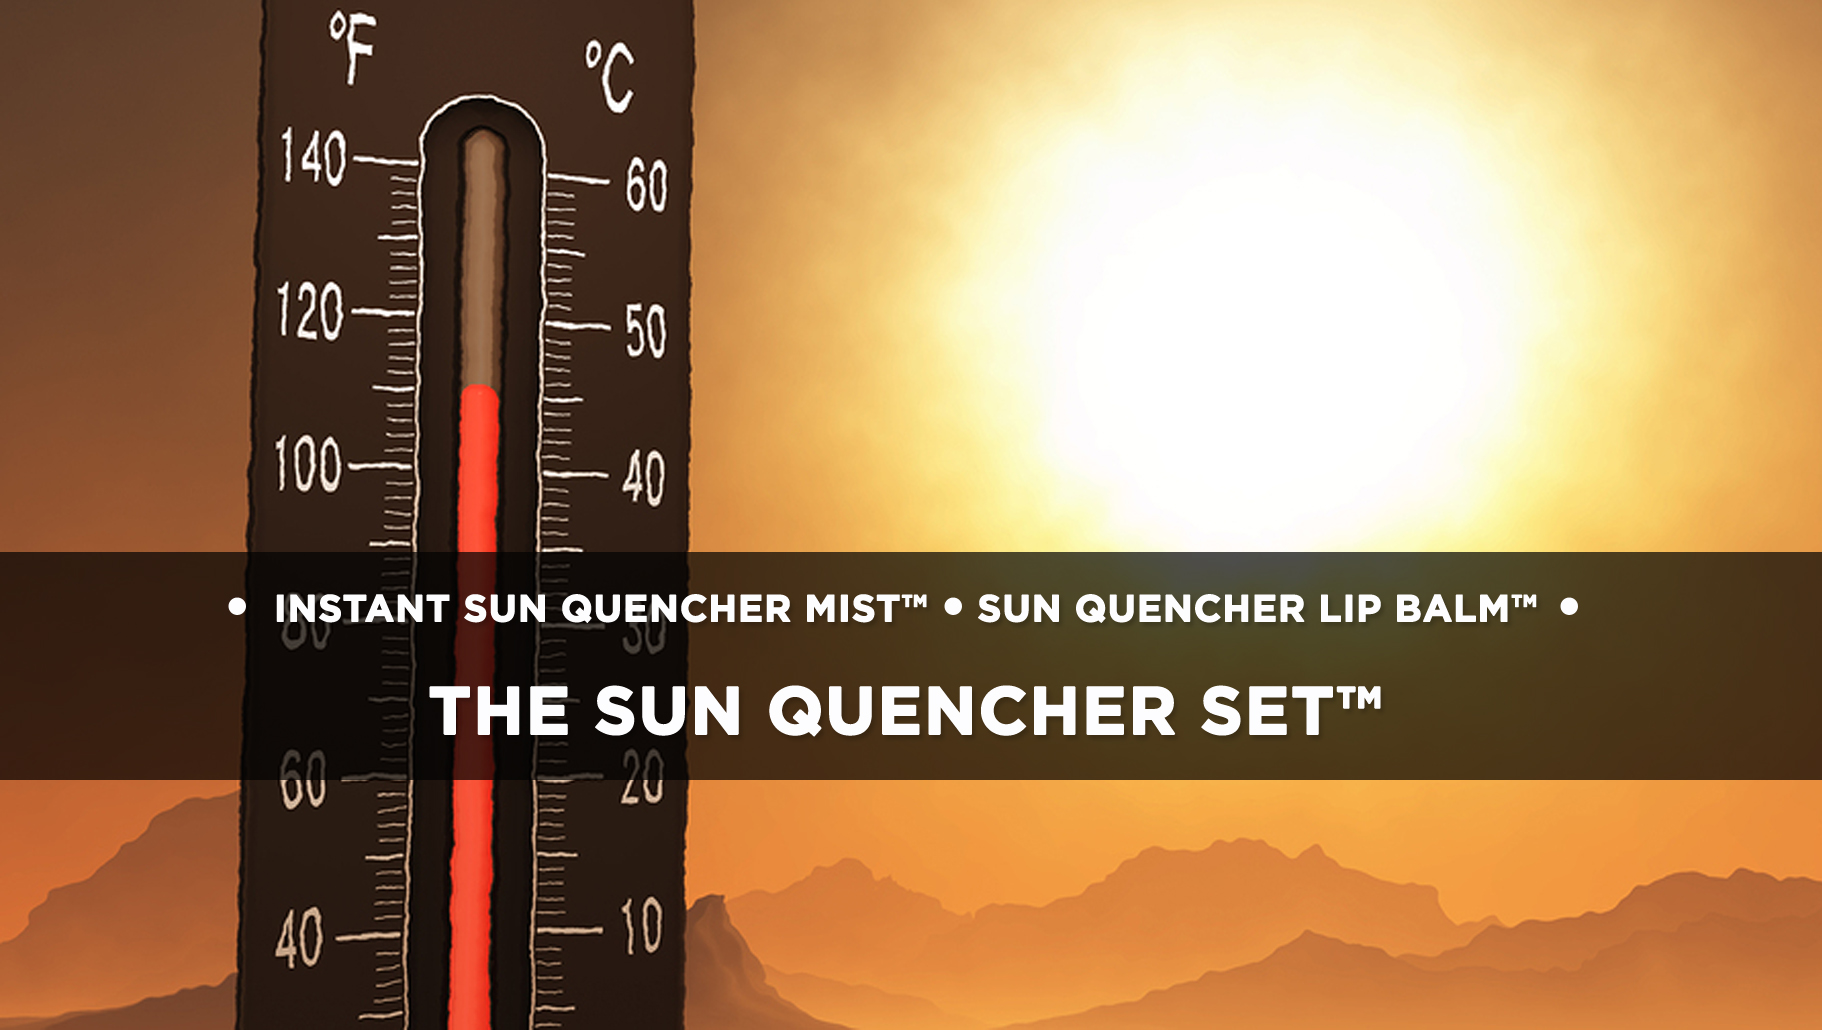 THE SUN QUENCHER SET™